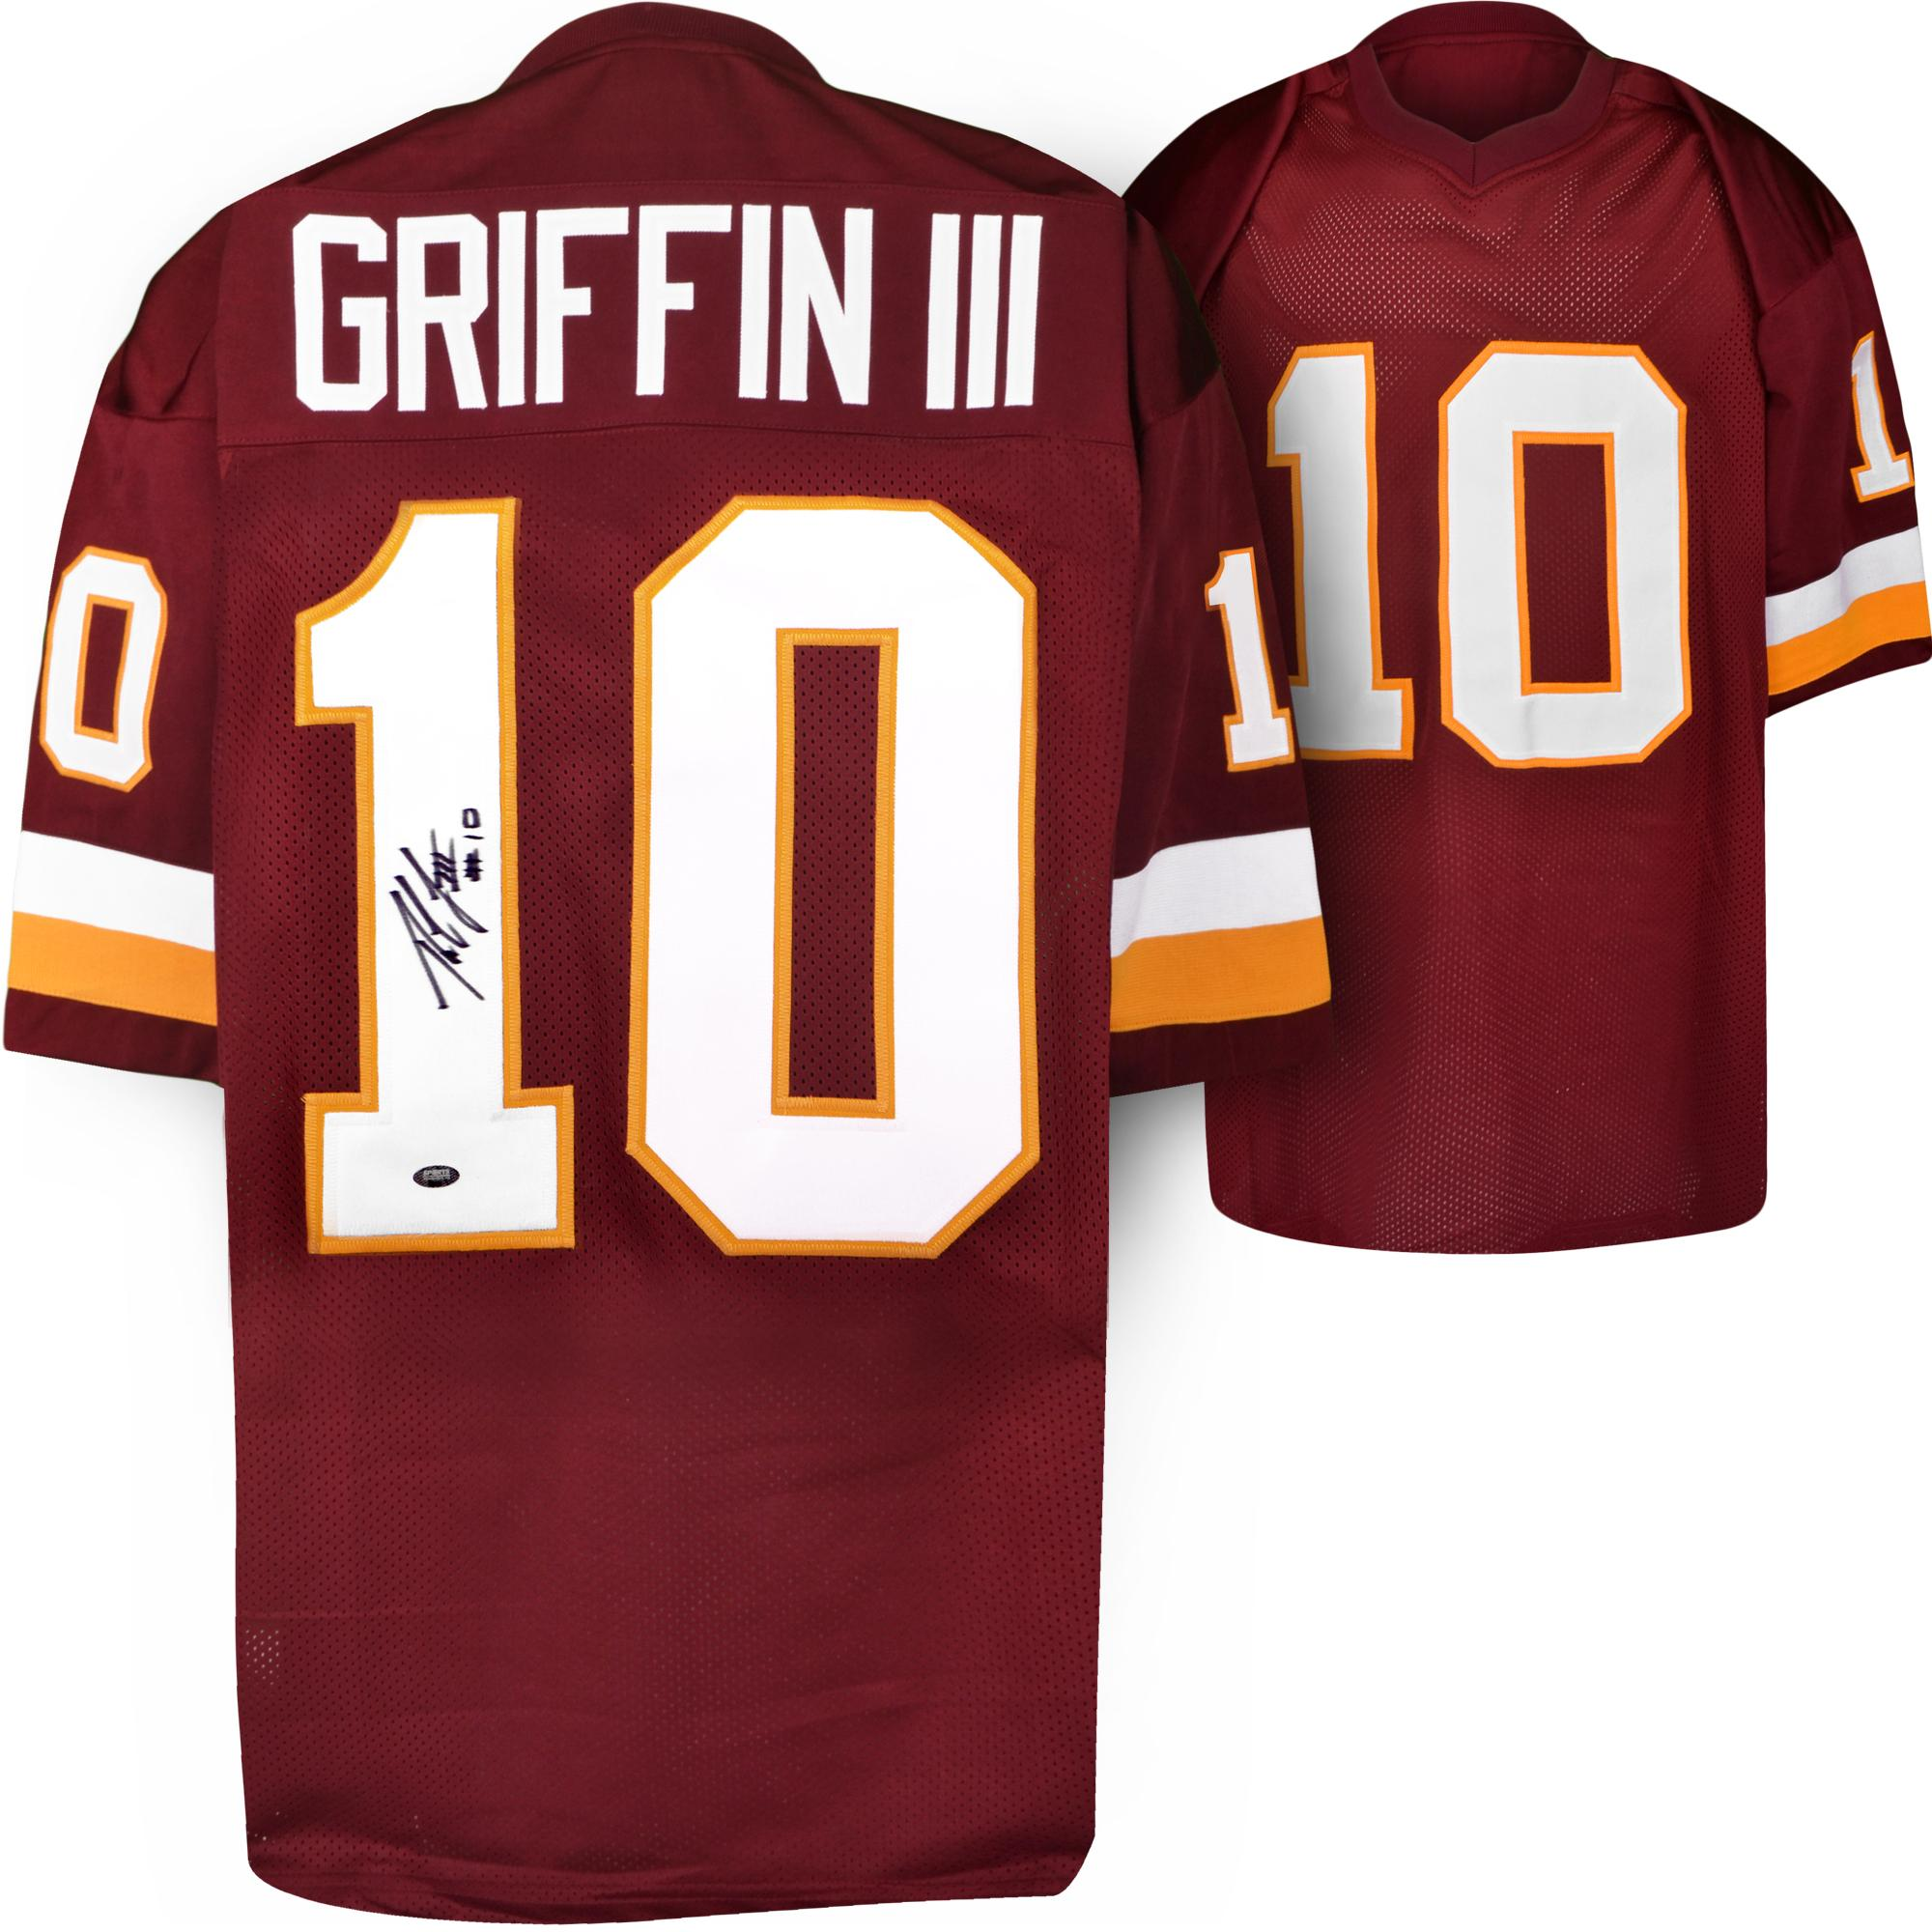 Robert Griffin III Autographed Jersey - SM Holo - Custom Prostyle